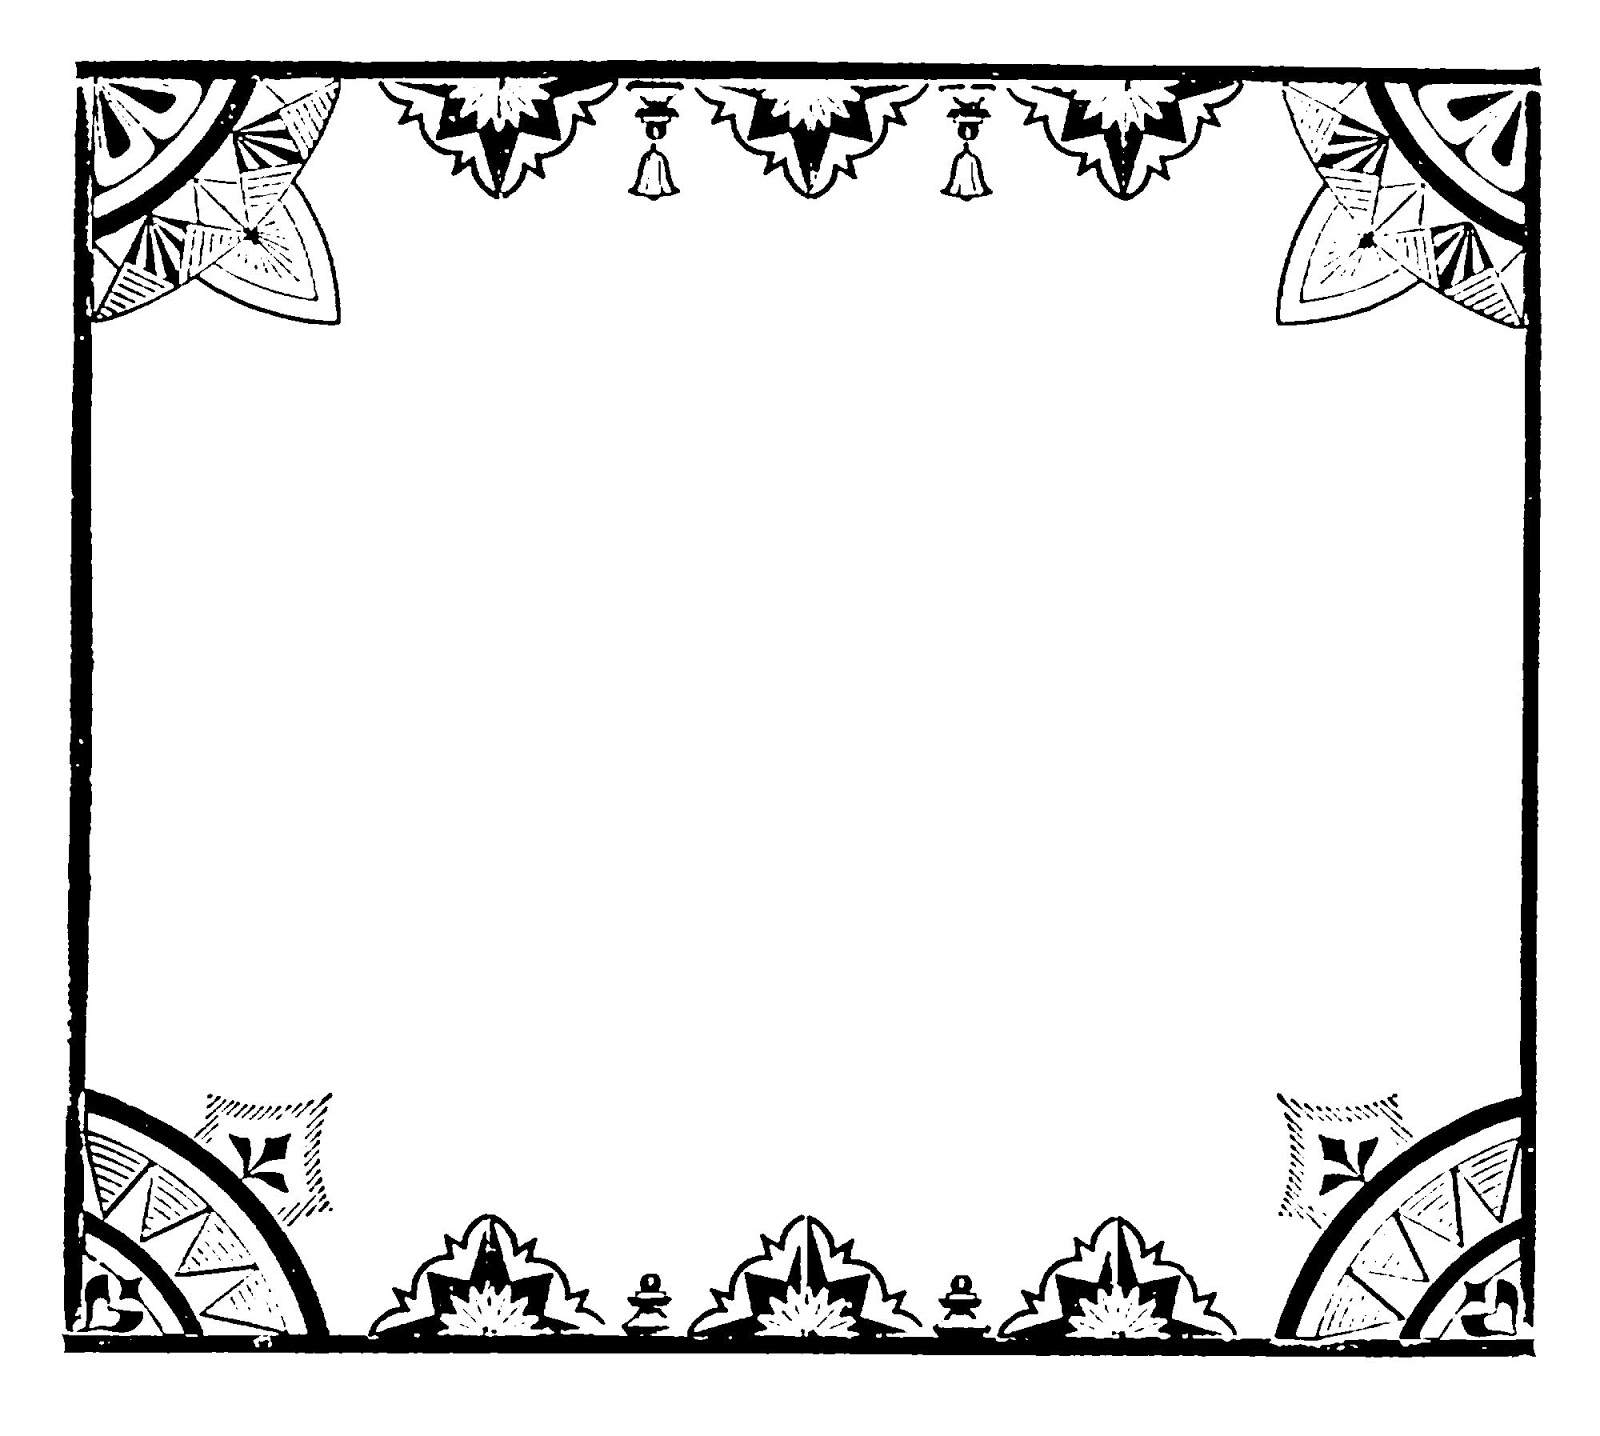 Digital Stamp Design: Decorative Frame Free Clip Art Printable ...